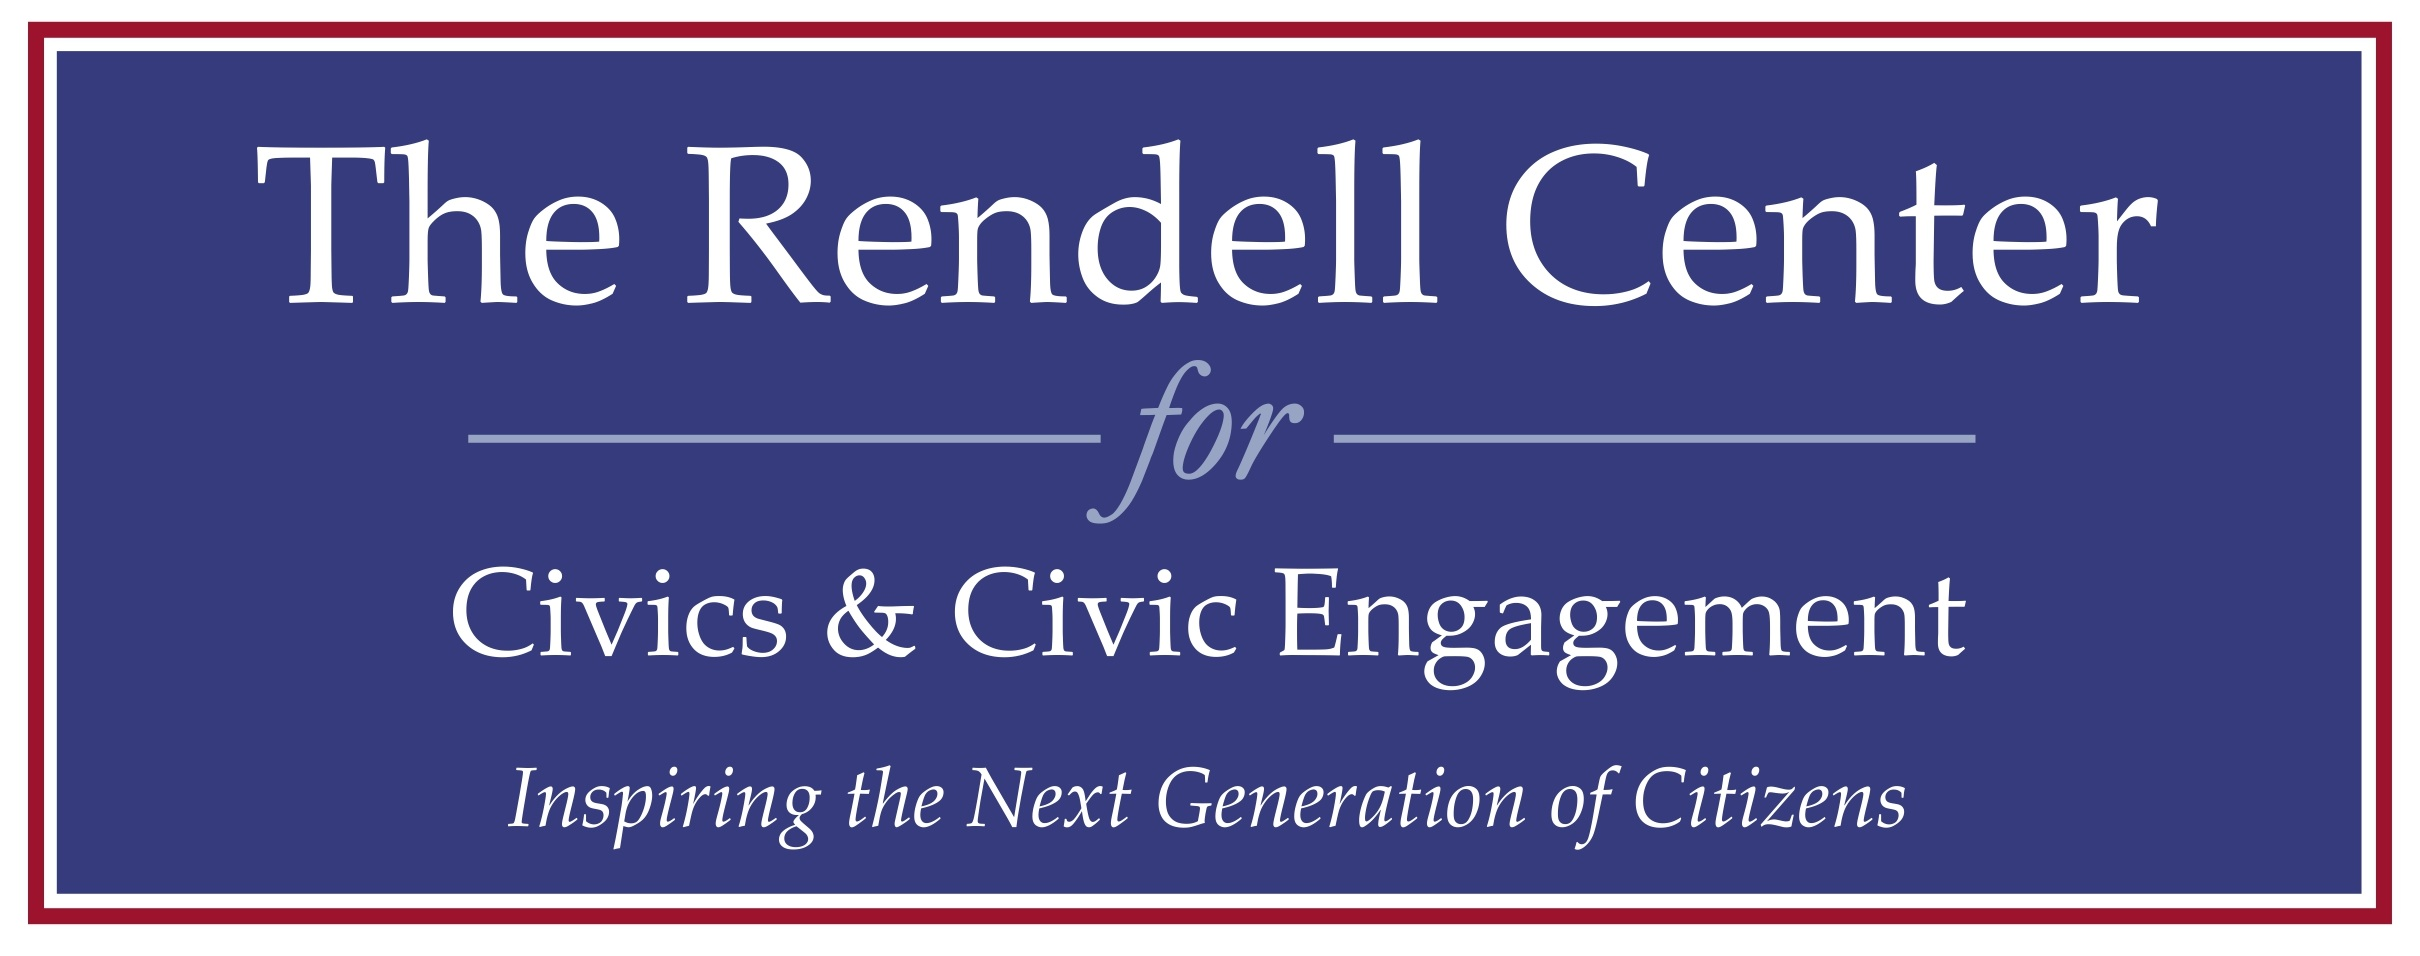 Rendell Center logo